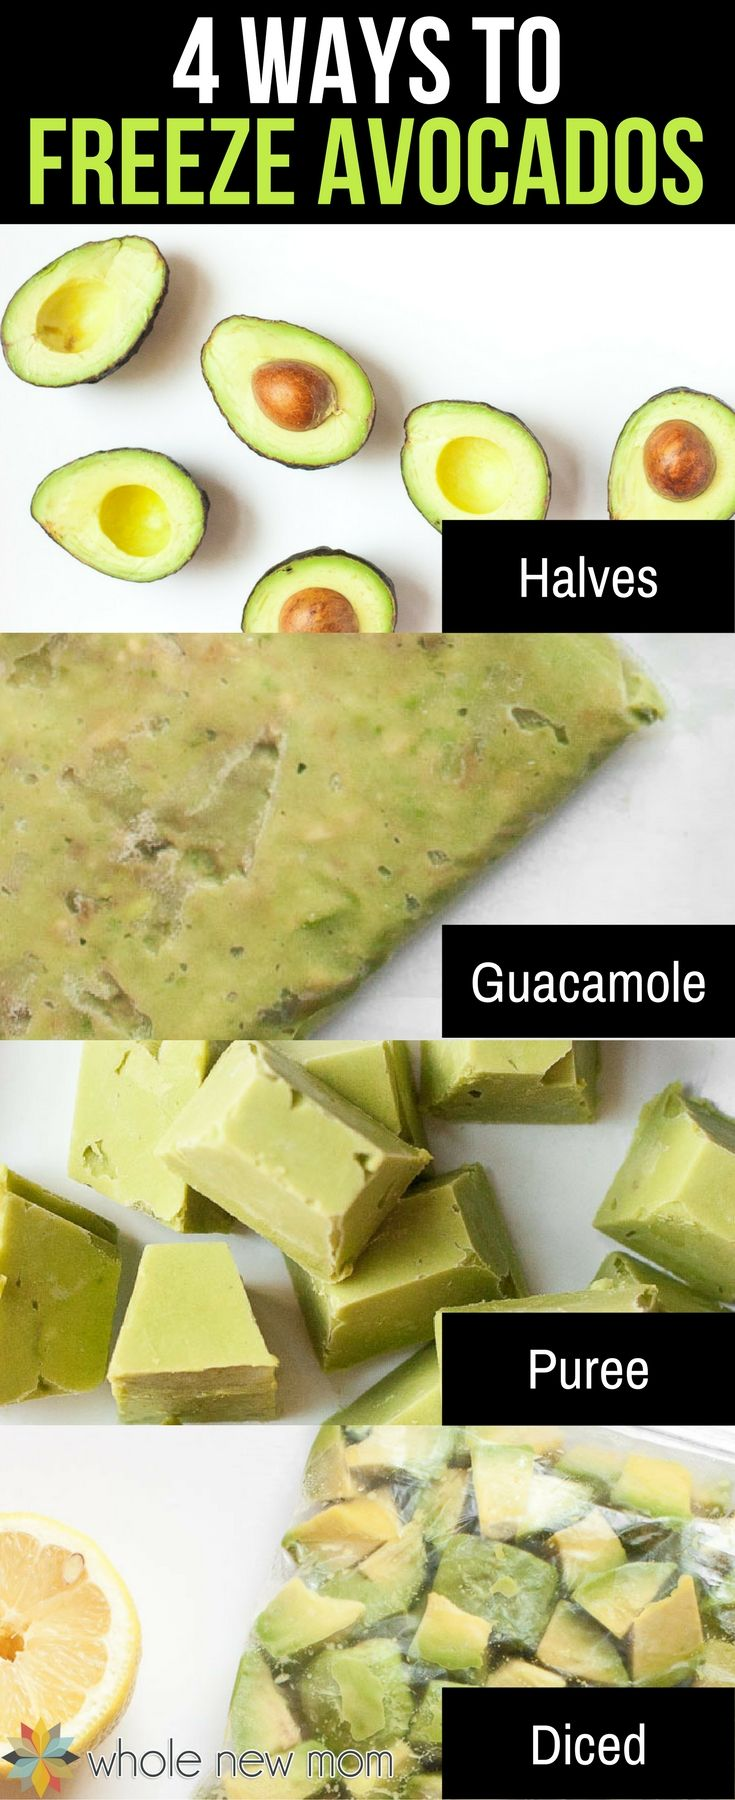 Did you know that freezing avocados seriously works? Here are 4 Ways to Freeze Avocados so you can save loads of money when they're on sale! via @wholenewmom